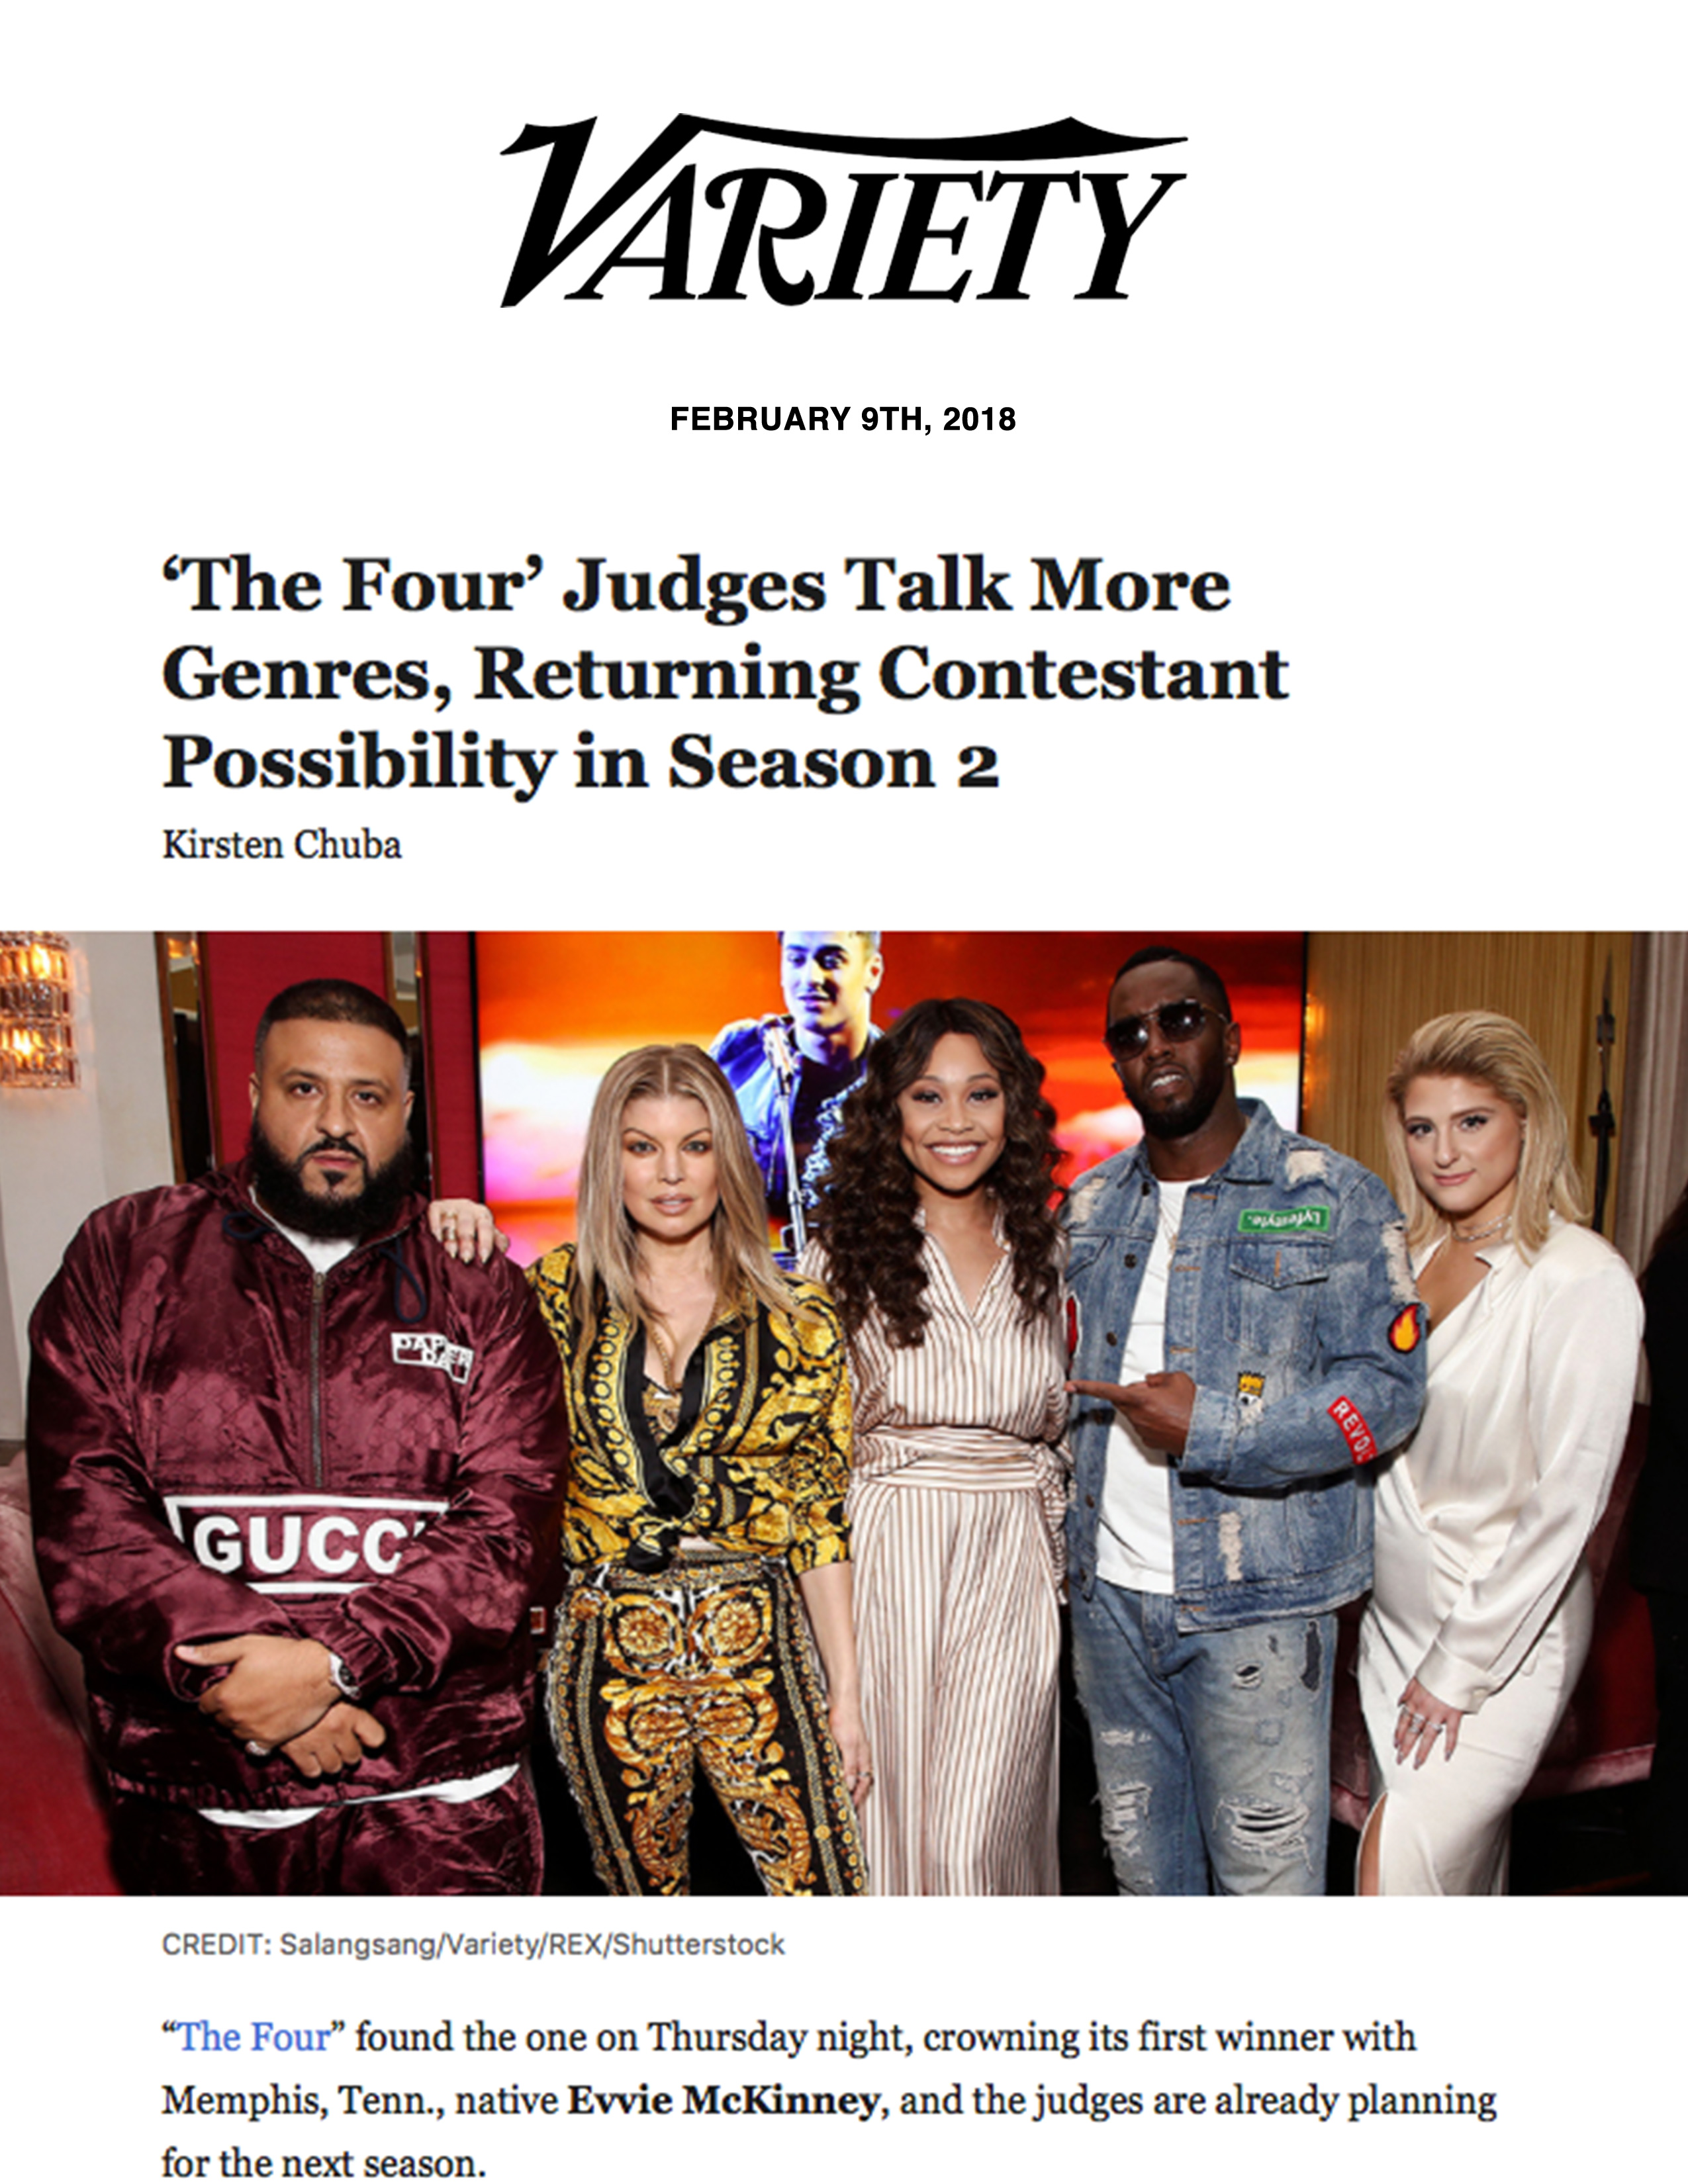 'The Four' Judges Talk More Genres, Returning Contestant Possibility in Season 2